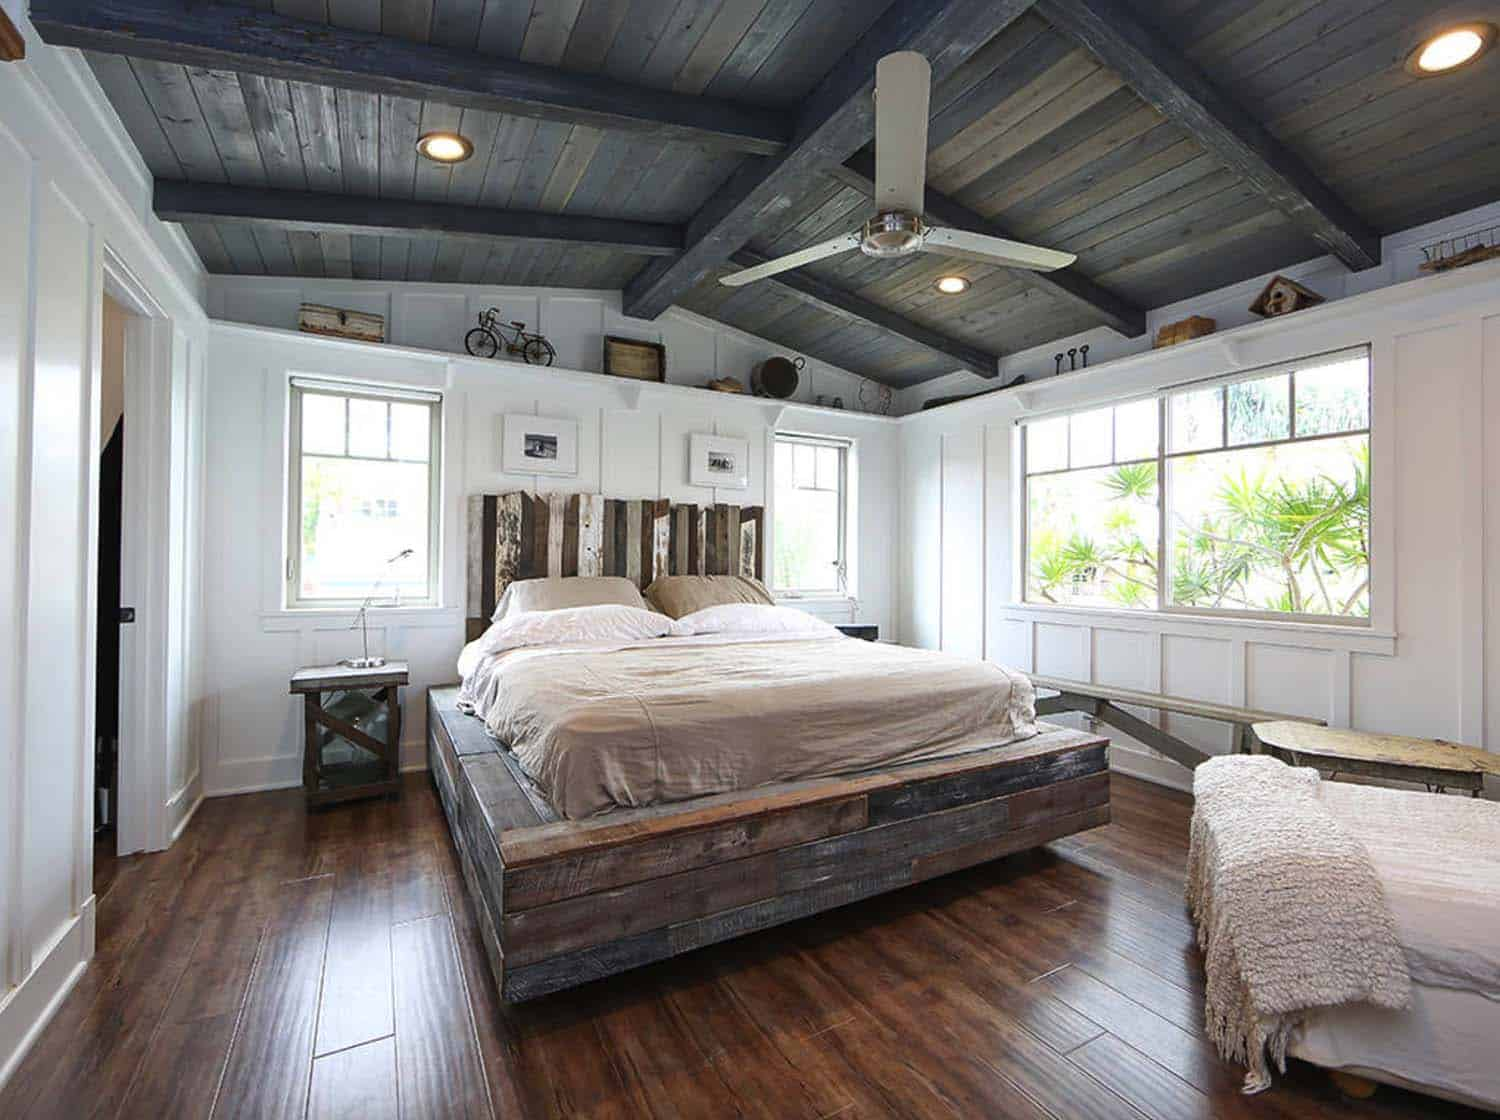 Amazing Cozy-Rustic Bedrooms-04-1 Kindesign